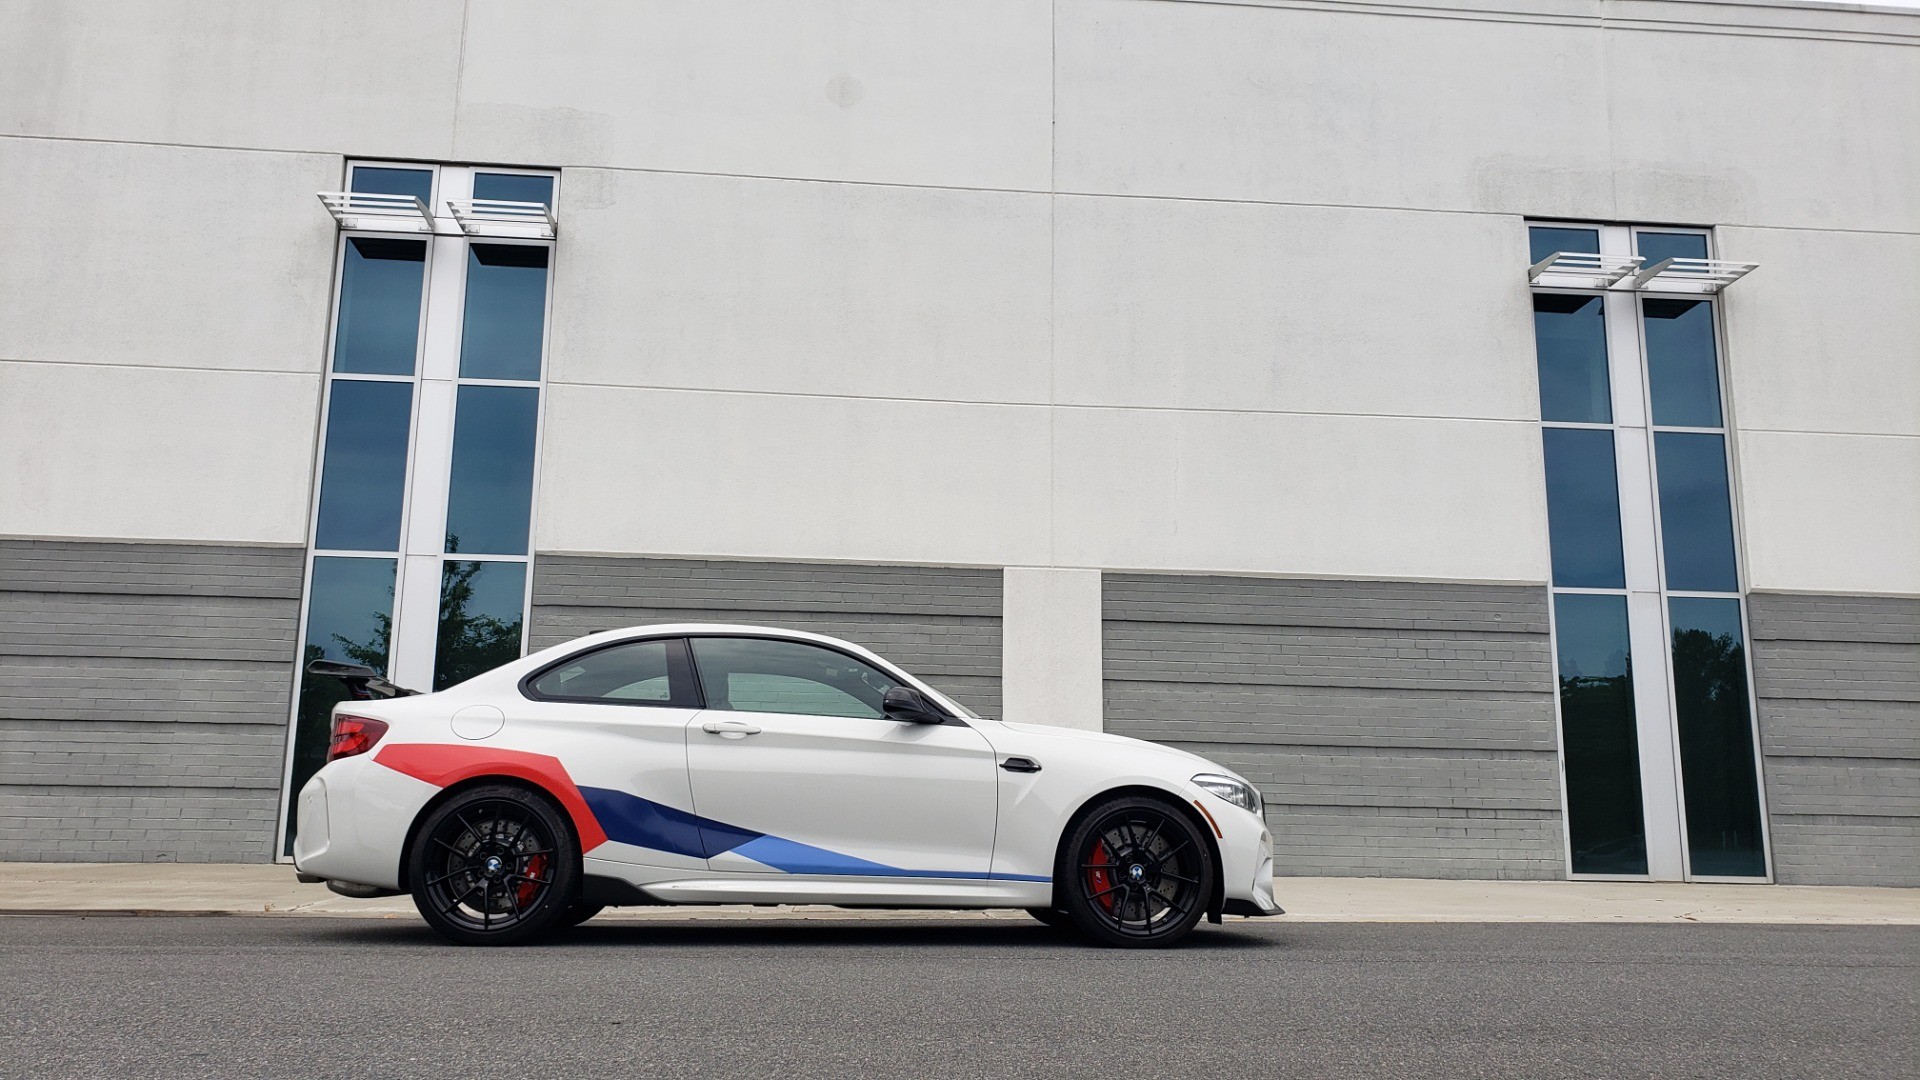 Used 2020 BMW M2 CS COMPETITION 405HP / COUPE / MANUAL / NAV / H/K SOUND / REARVIEW for sale $105,995 at Formula Imports in Charlotte NC 28227 9